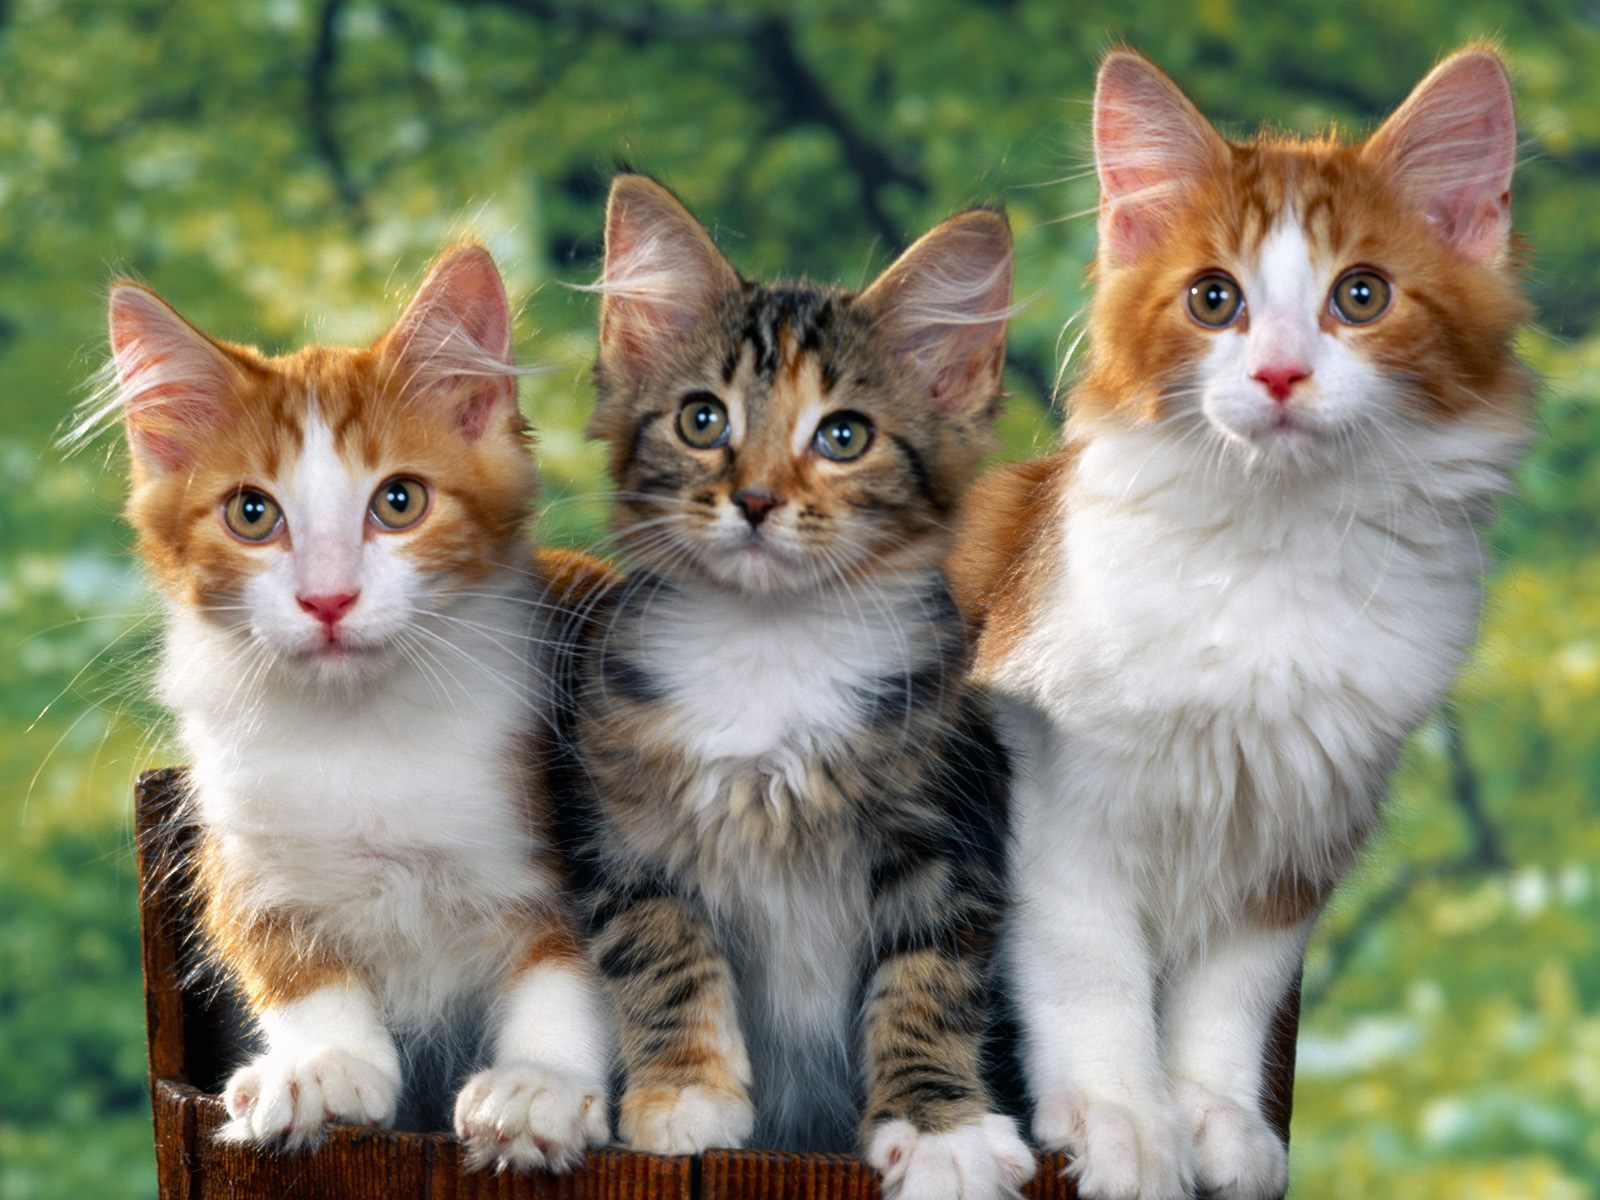 click to free download the wallpaper--Cute Cats Photo, Three Cats Together, All Looking at a Certain Object 1600X1200 free wallpaper download